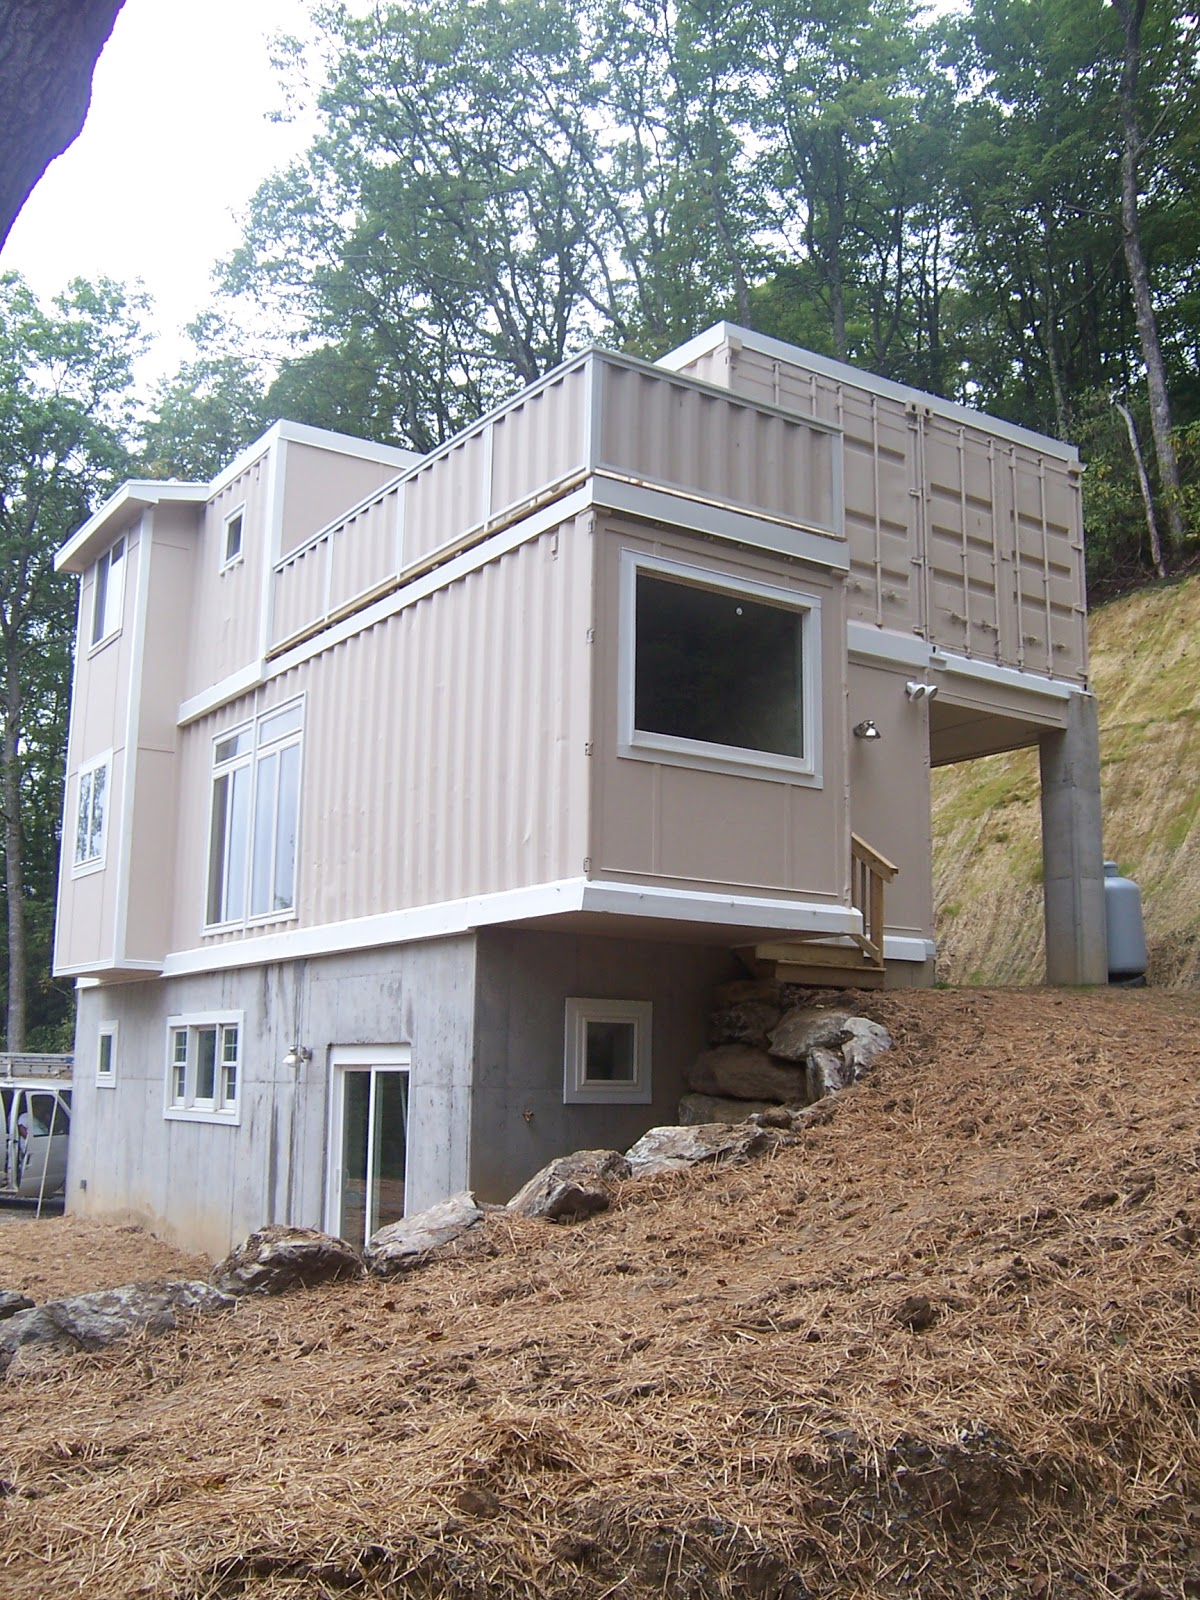 Shipping container homes high country green boxes dwellbox boone north carolina 5 - Homes made from shipping containers ...